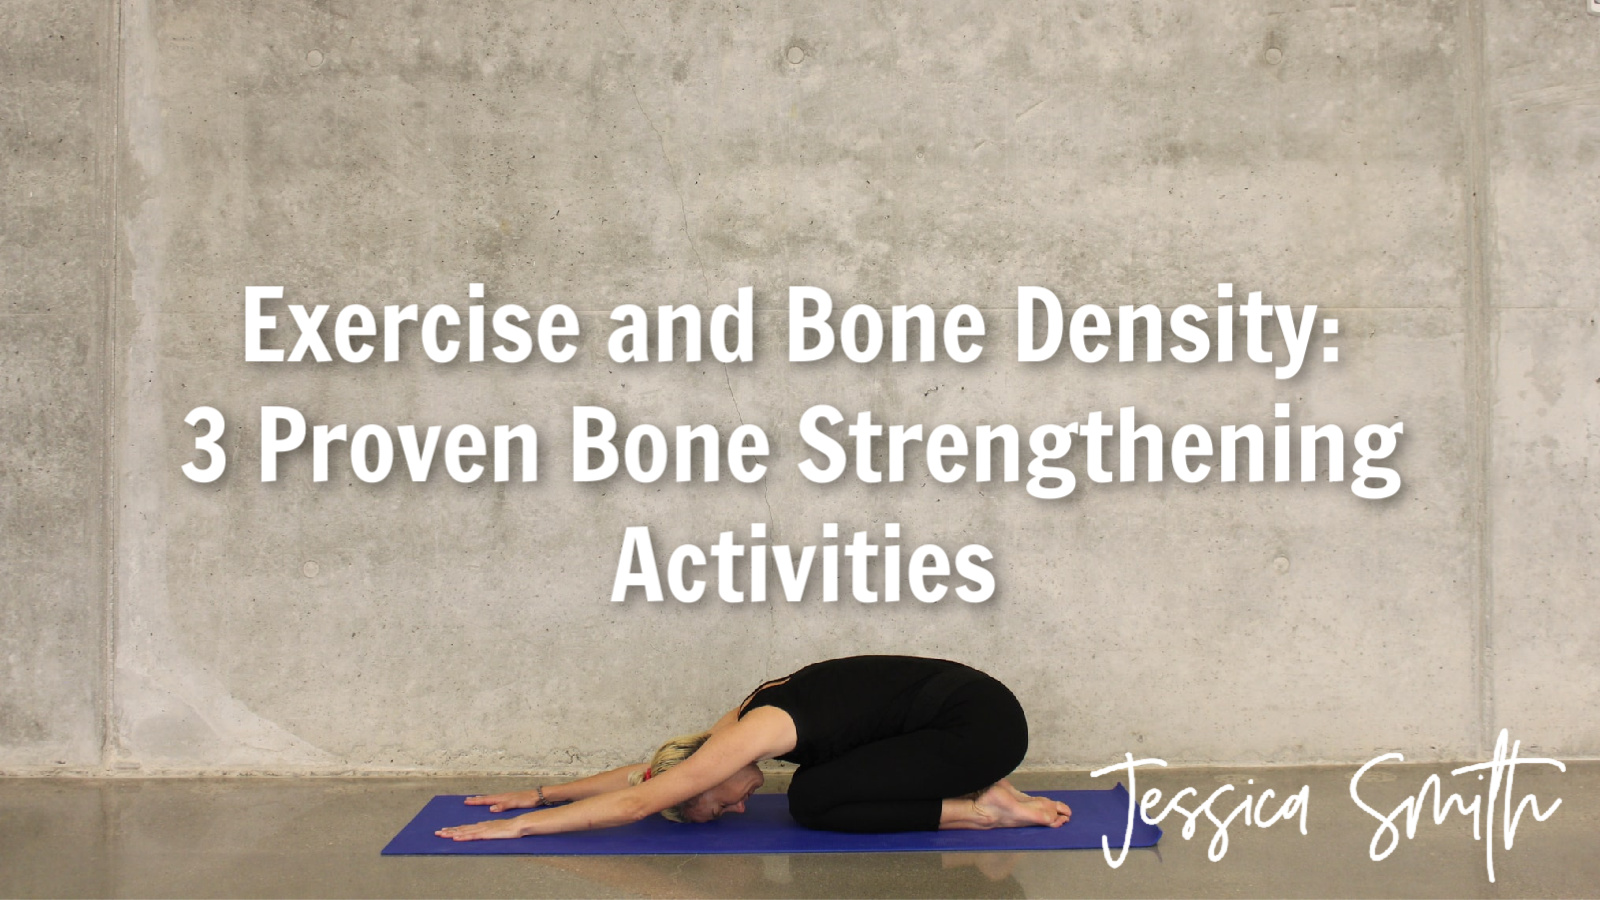 Exercise and Bone Density 3 Proven Bone Strengthening Activities by Jessica Smith 1 1